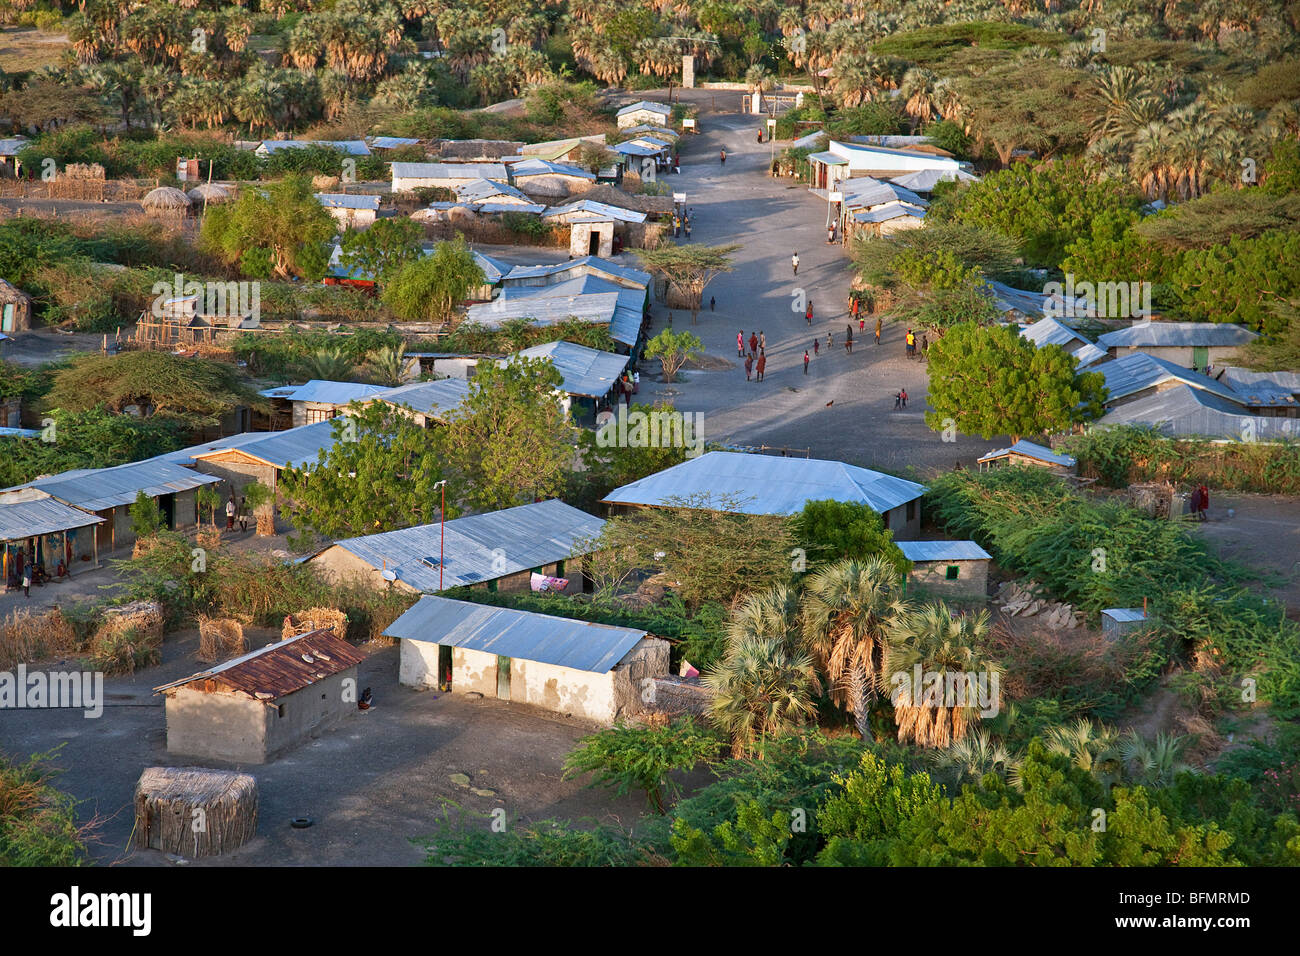 An aerial view of the small town of Loiengalani which is situated beside springs near the eastern shores of Lake - Stock Image